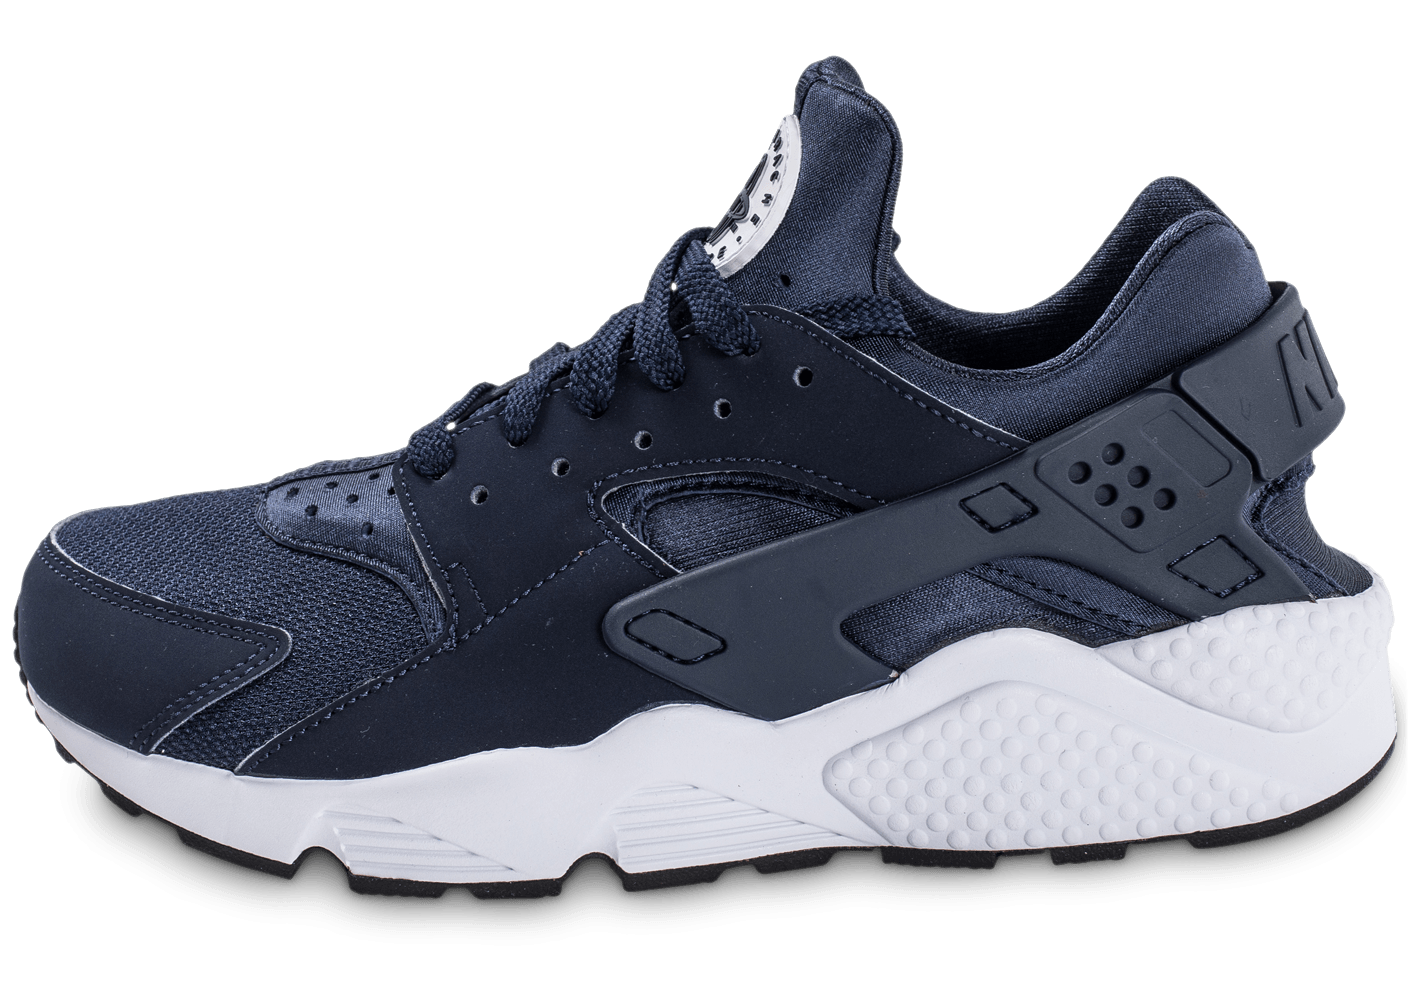 nike air huarache bleu marine chaussures homme chausport. Black Bedroom Furniture Sets. Home Design Ideas